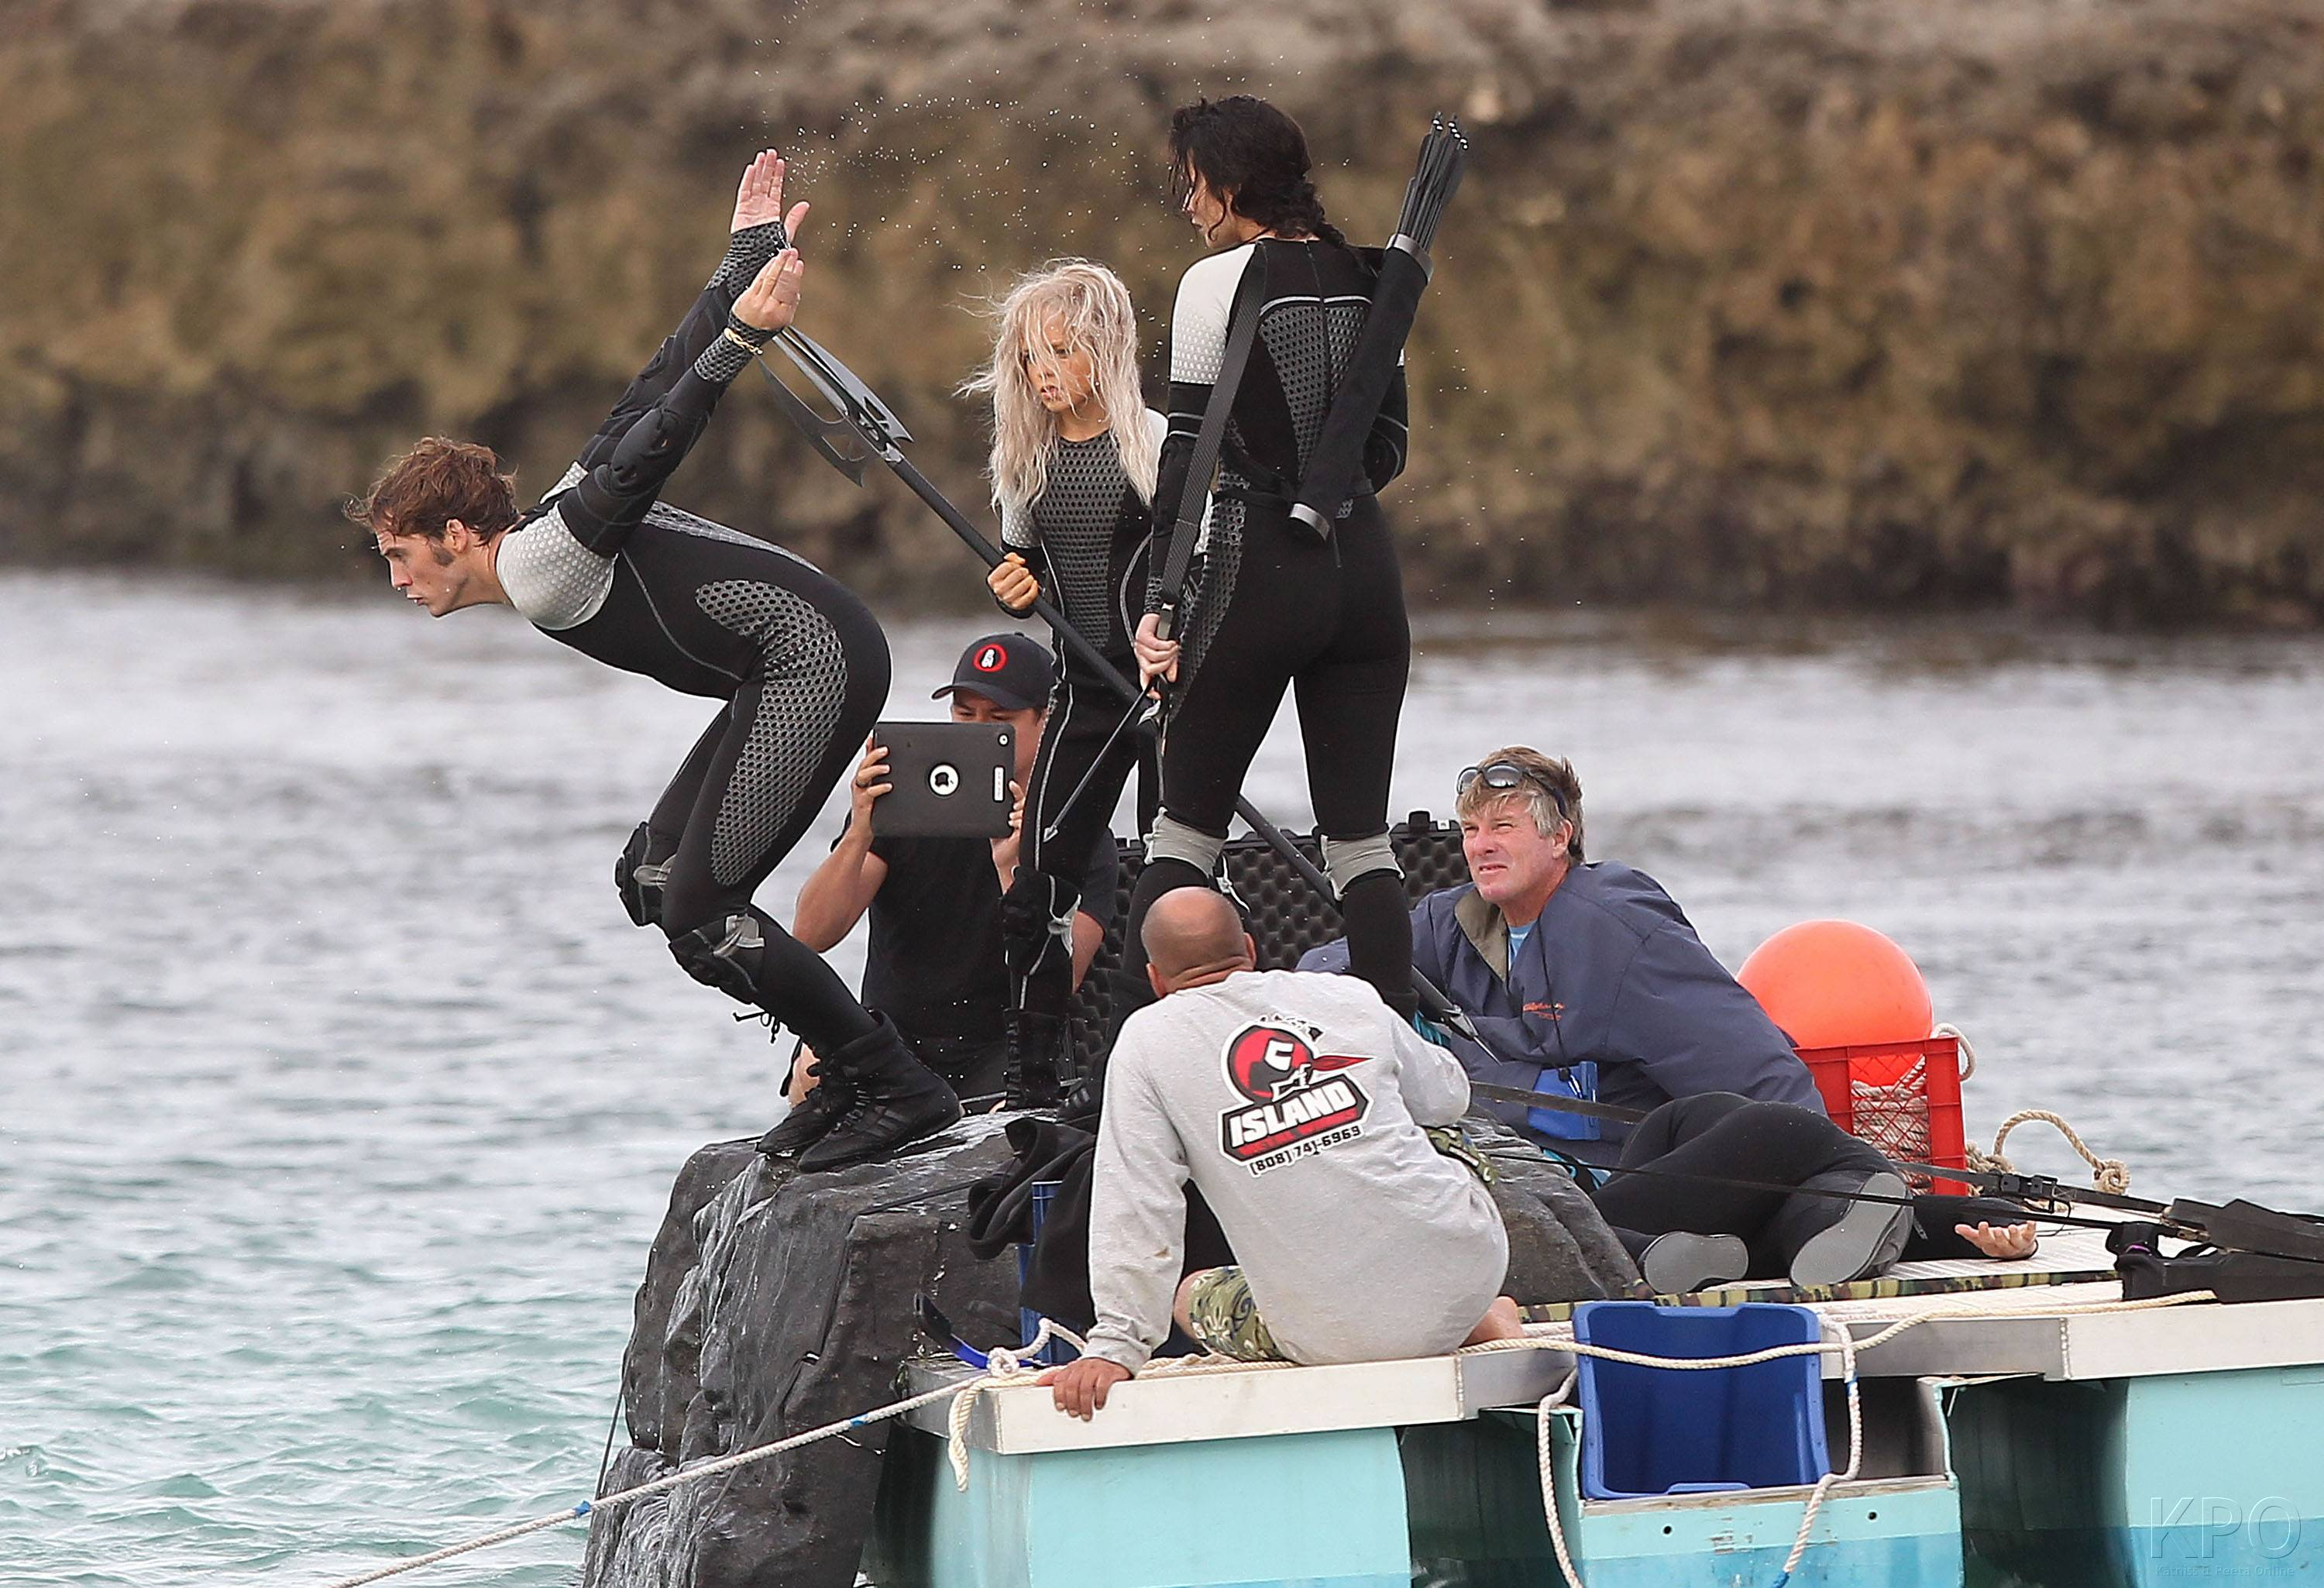 Catching Fire shooting in Hawaii the hunger games 32877062 3000 2050 Thirteen for 2013: The Movie Preview